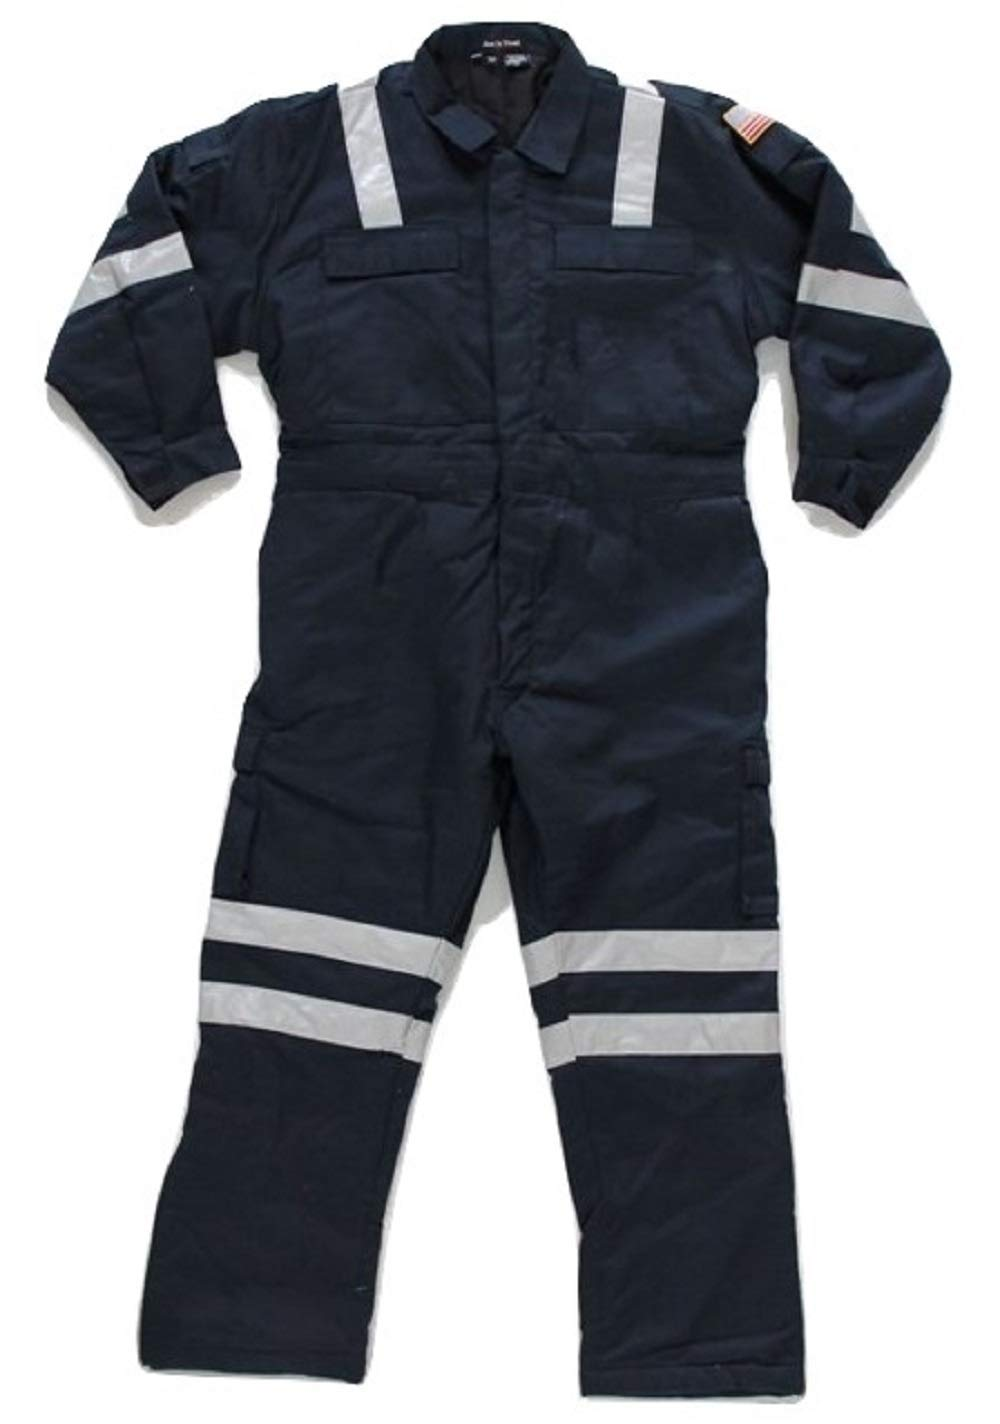 Premium High Visibility Hi Vis Coveralls with Leg Zipper (5XL - Regular, Navy Blue) by Just In Trend (Image #1)